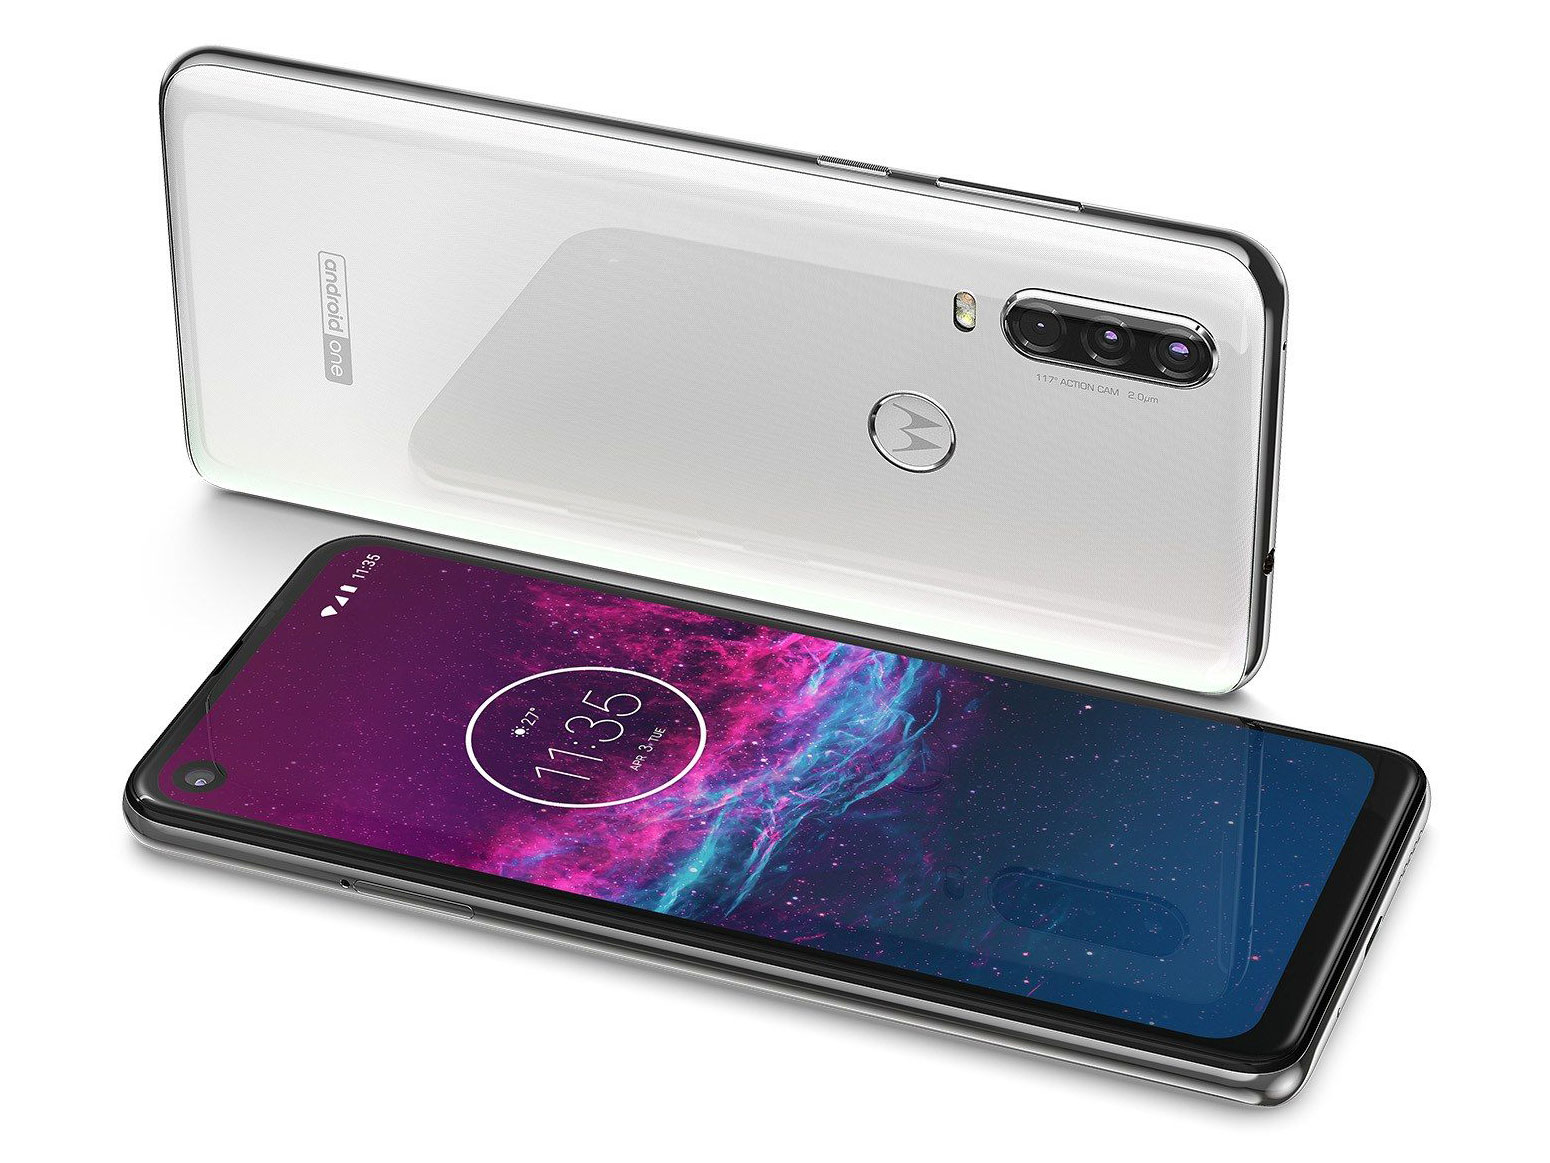 Motorola One Action comes with ultra-wide action cam and